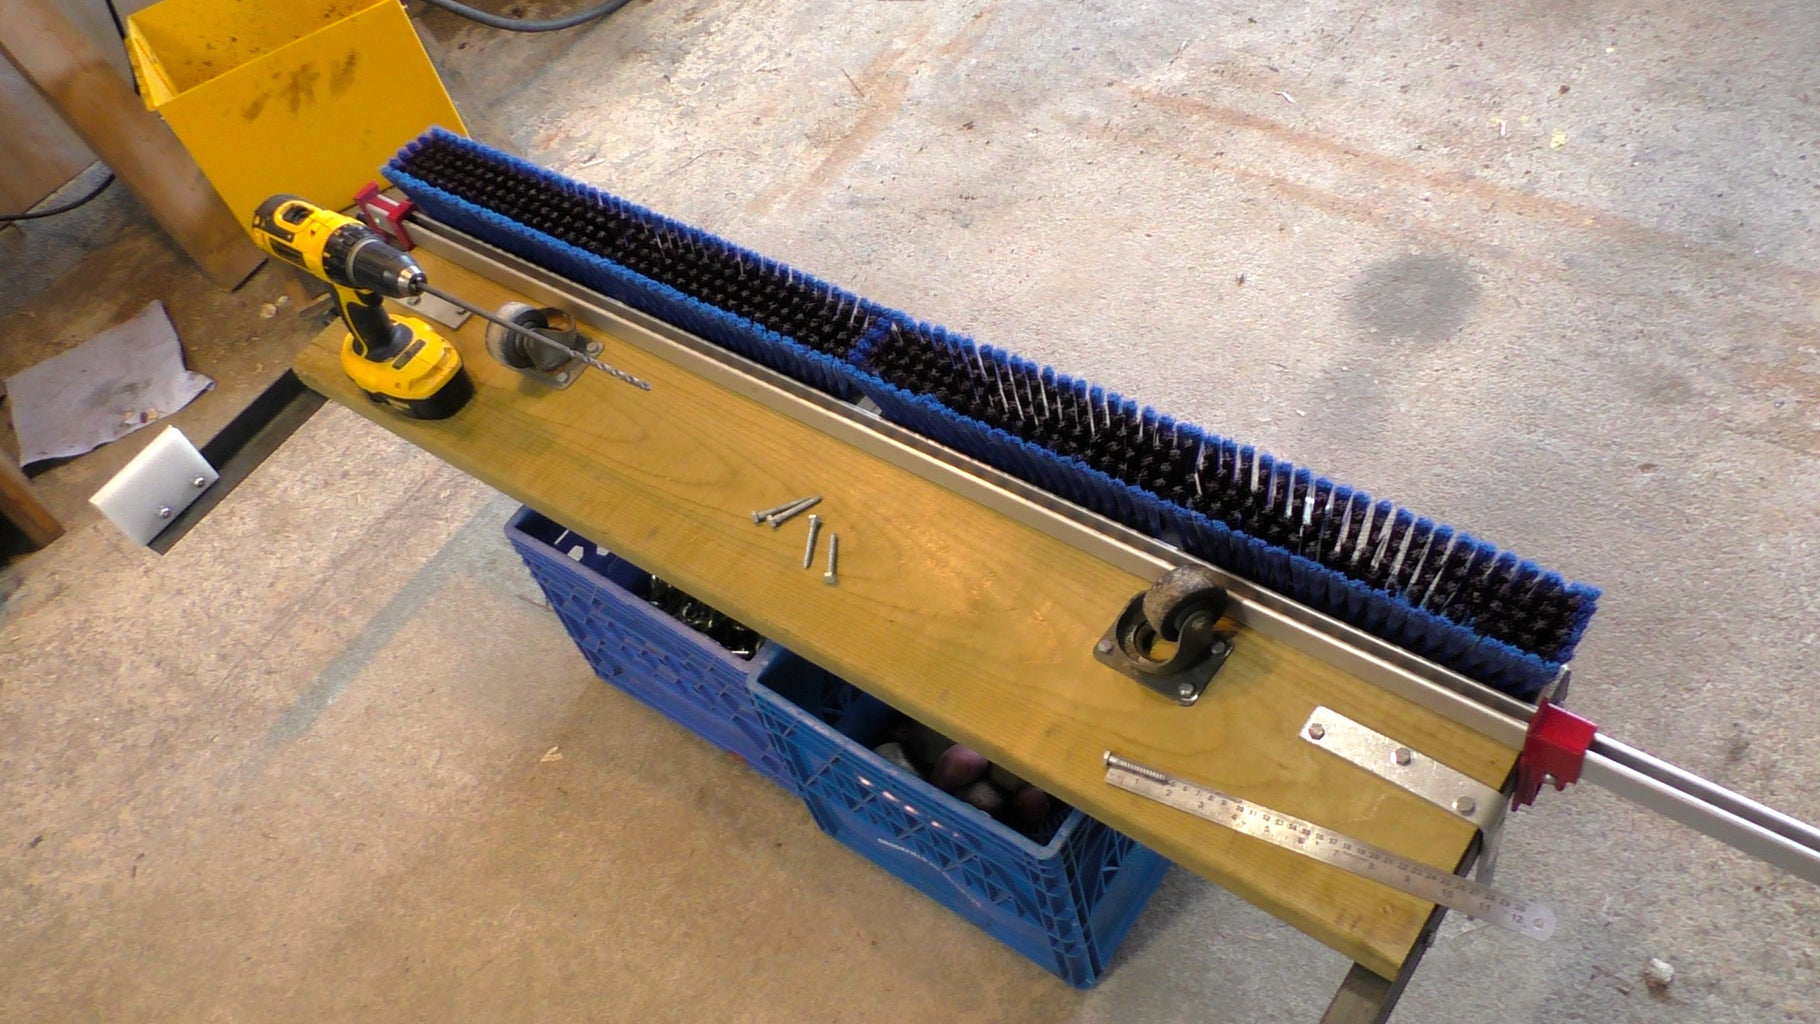 Installing Broom Release Arms, Magnets, New Brooms, Casters, and the Guide Brackets